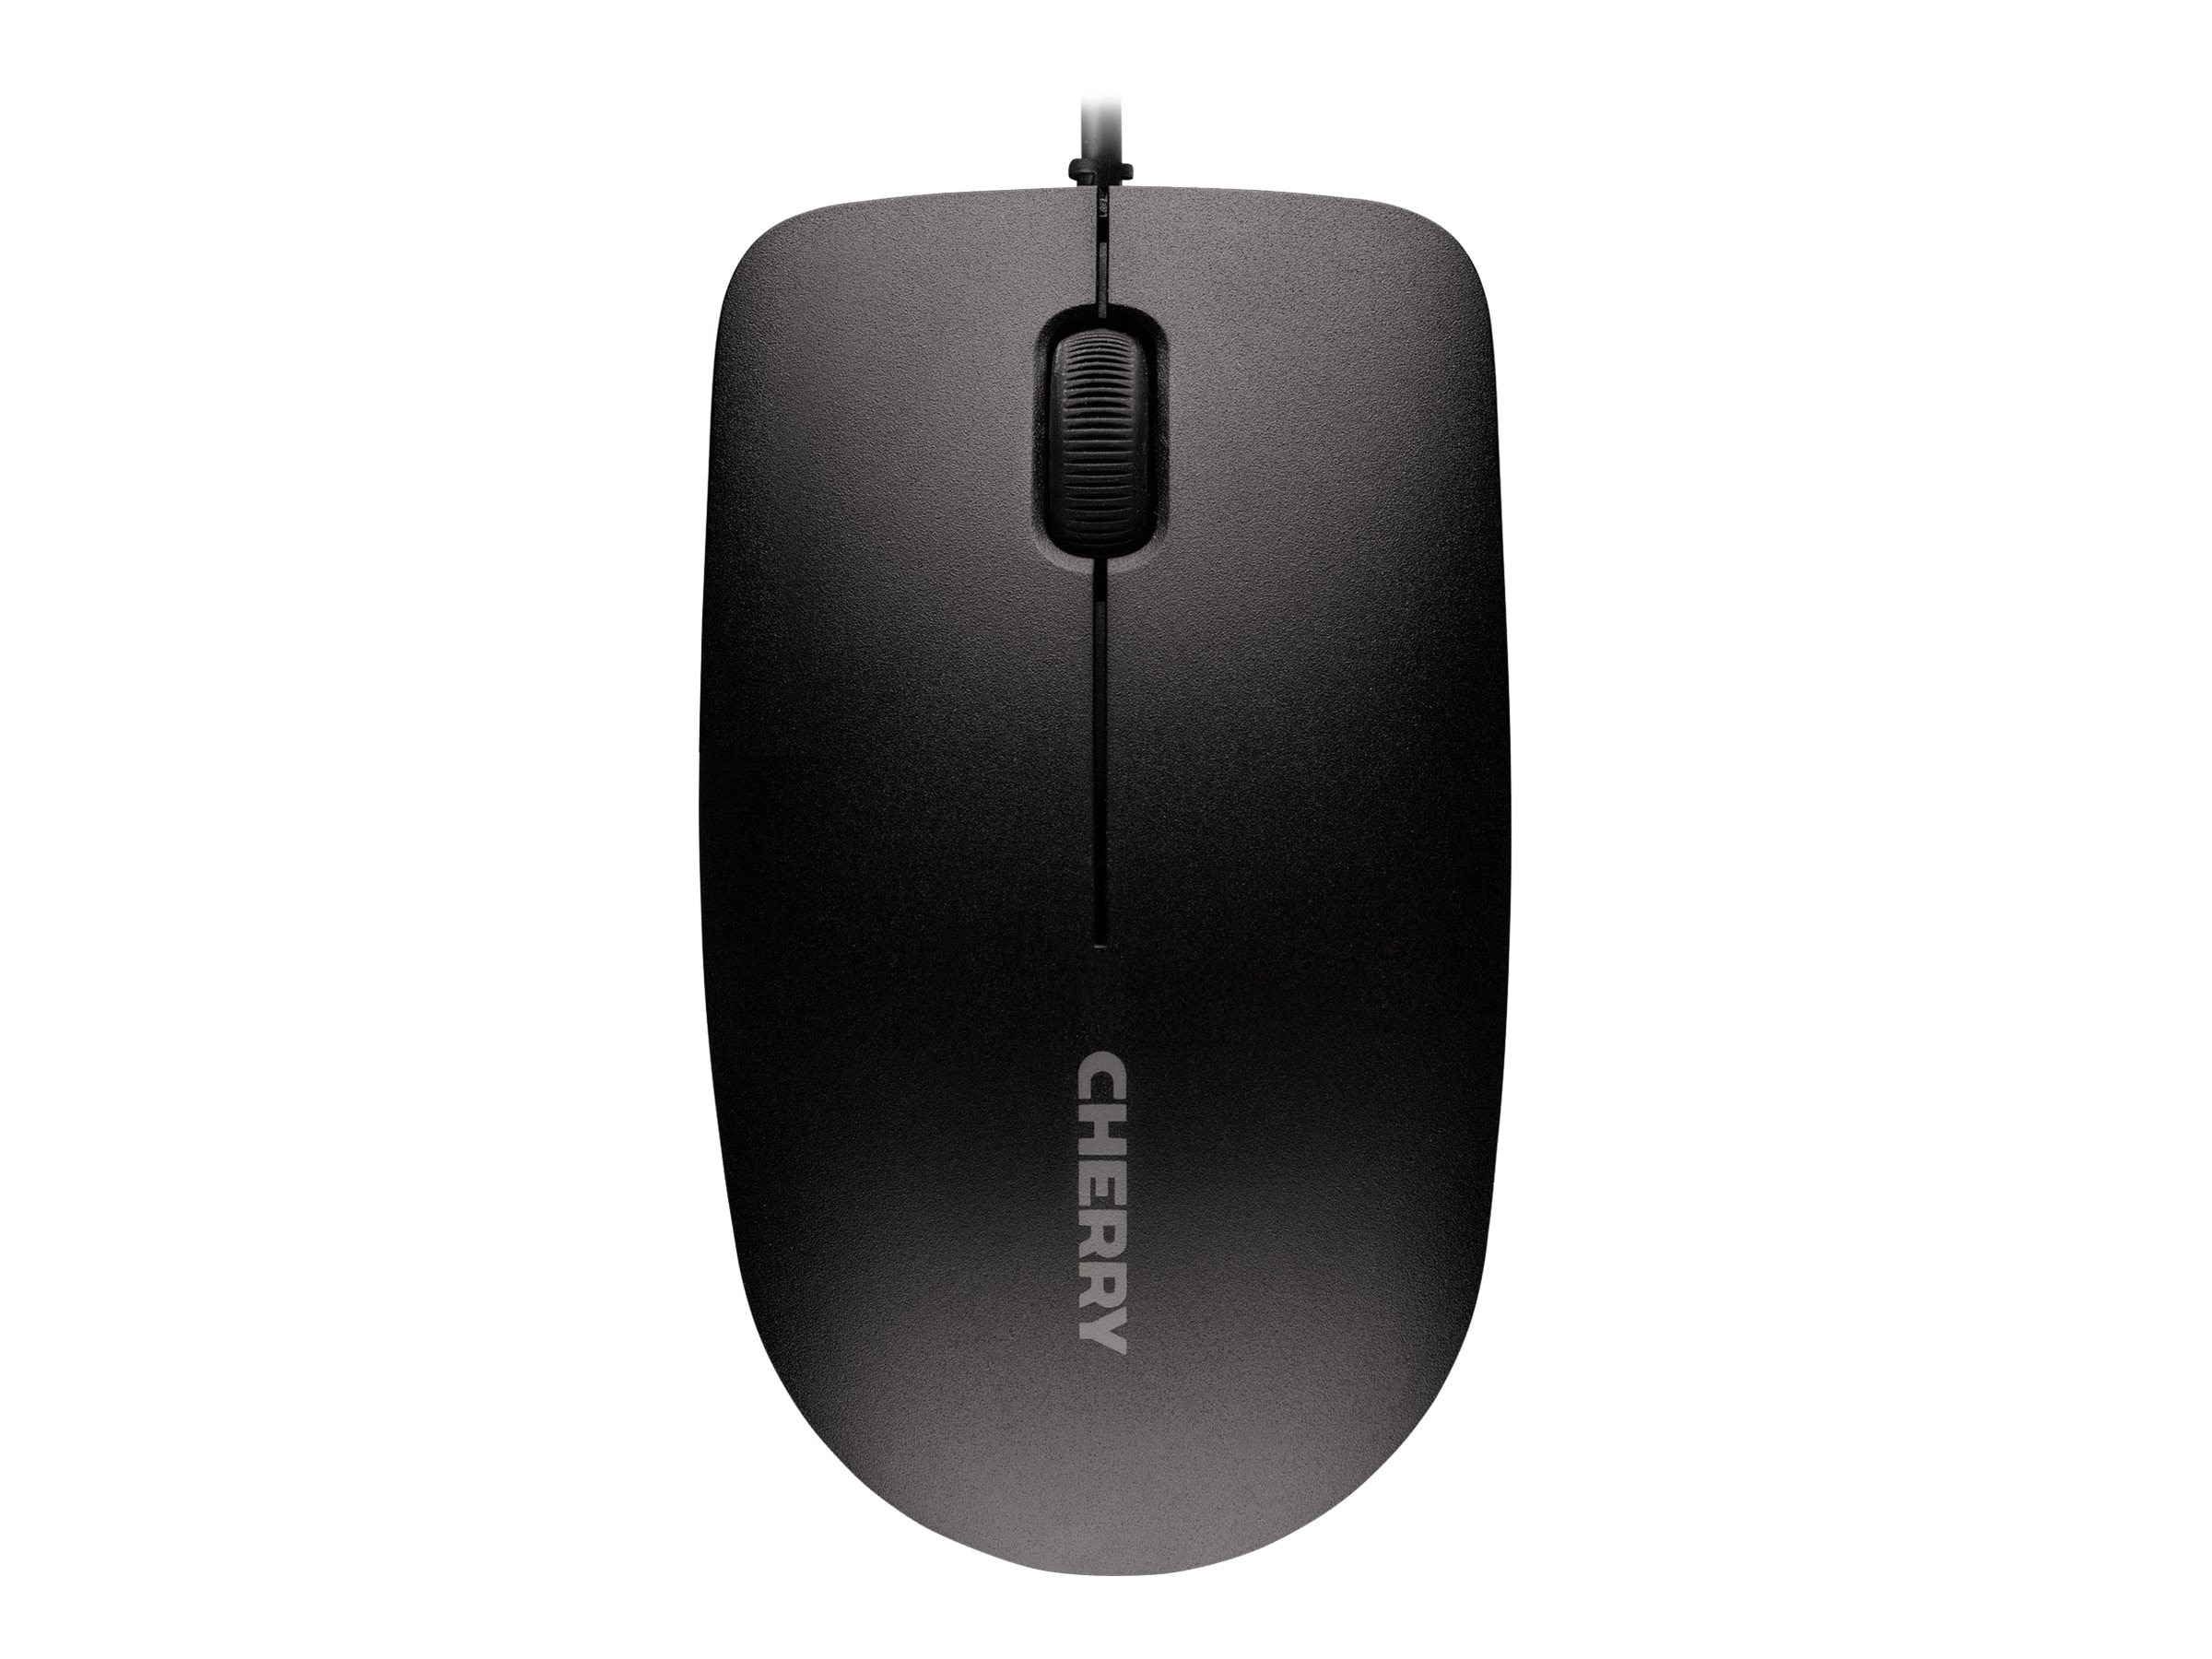 Cherry MC 1000 USB Mouse, 3-Button, 1200dpi, Black, JM-0800-2